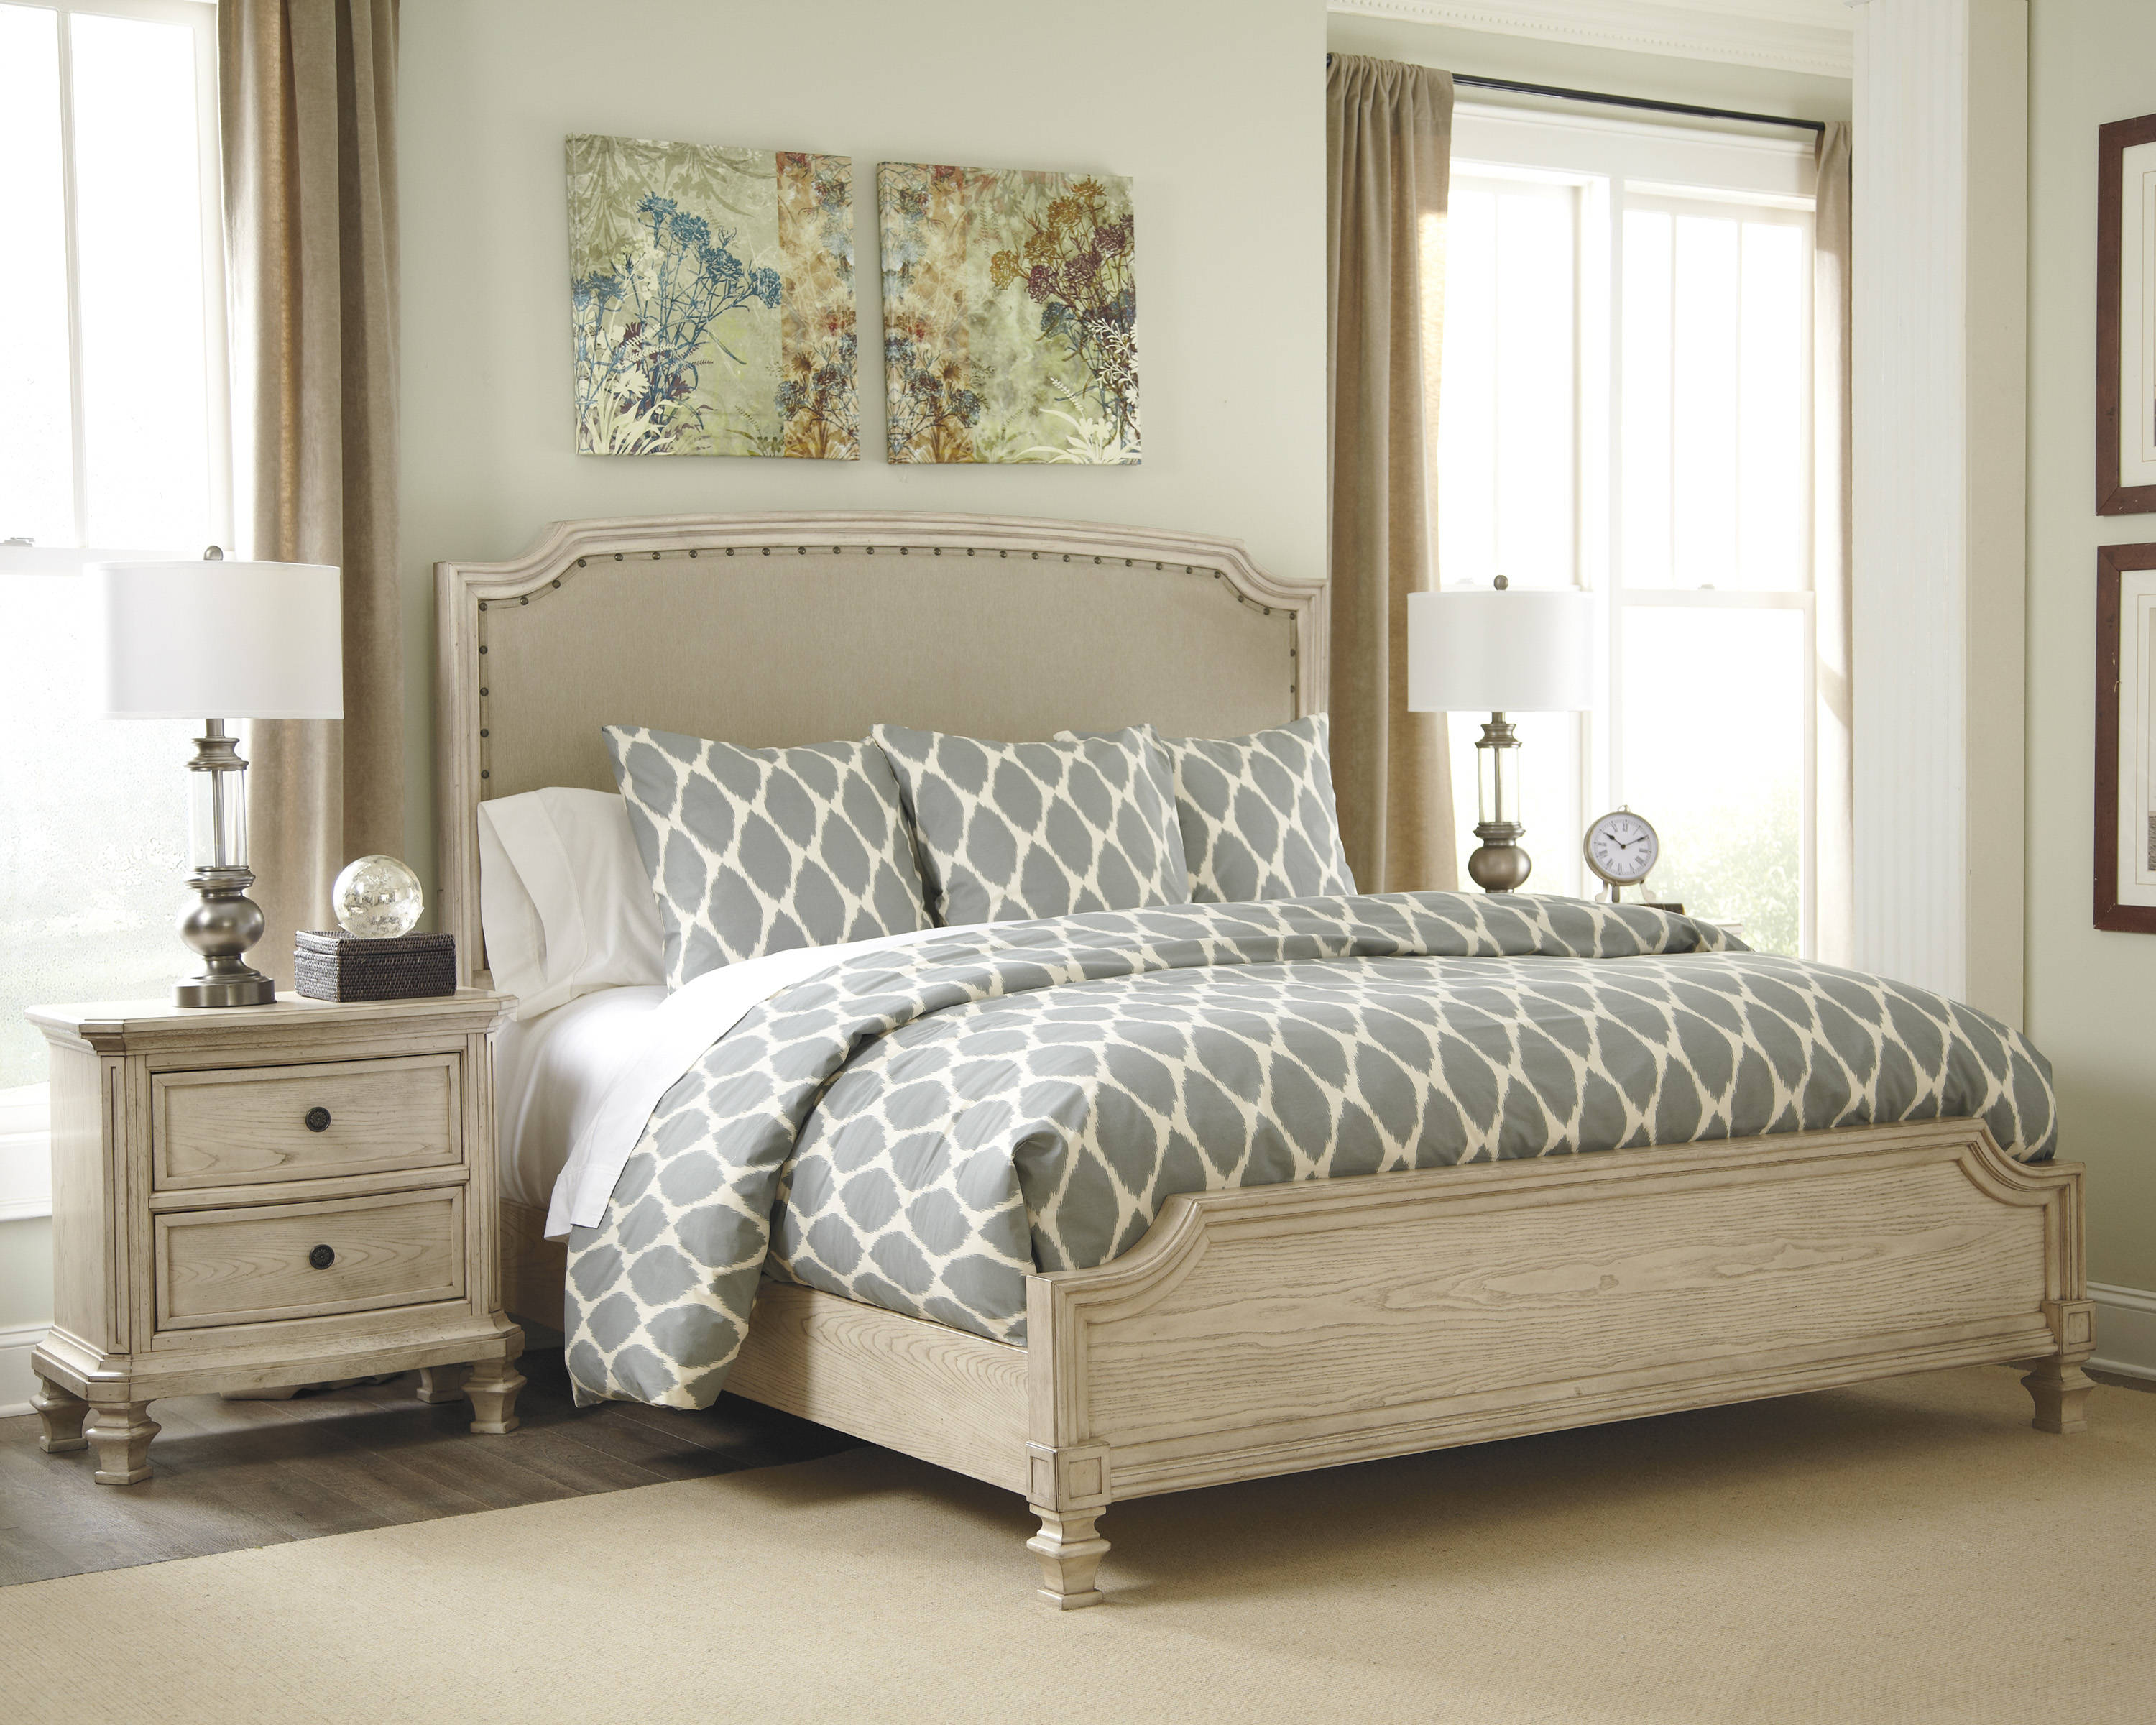 Ashley Furniture Demarlos 2pc Bedroom Set With King Upholstered